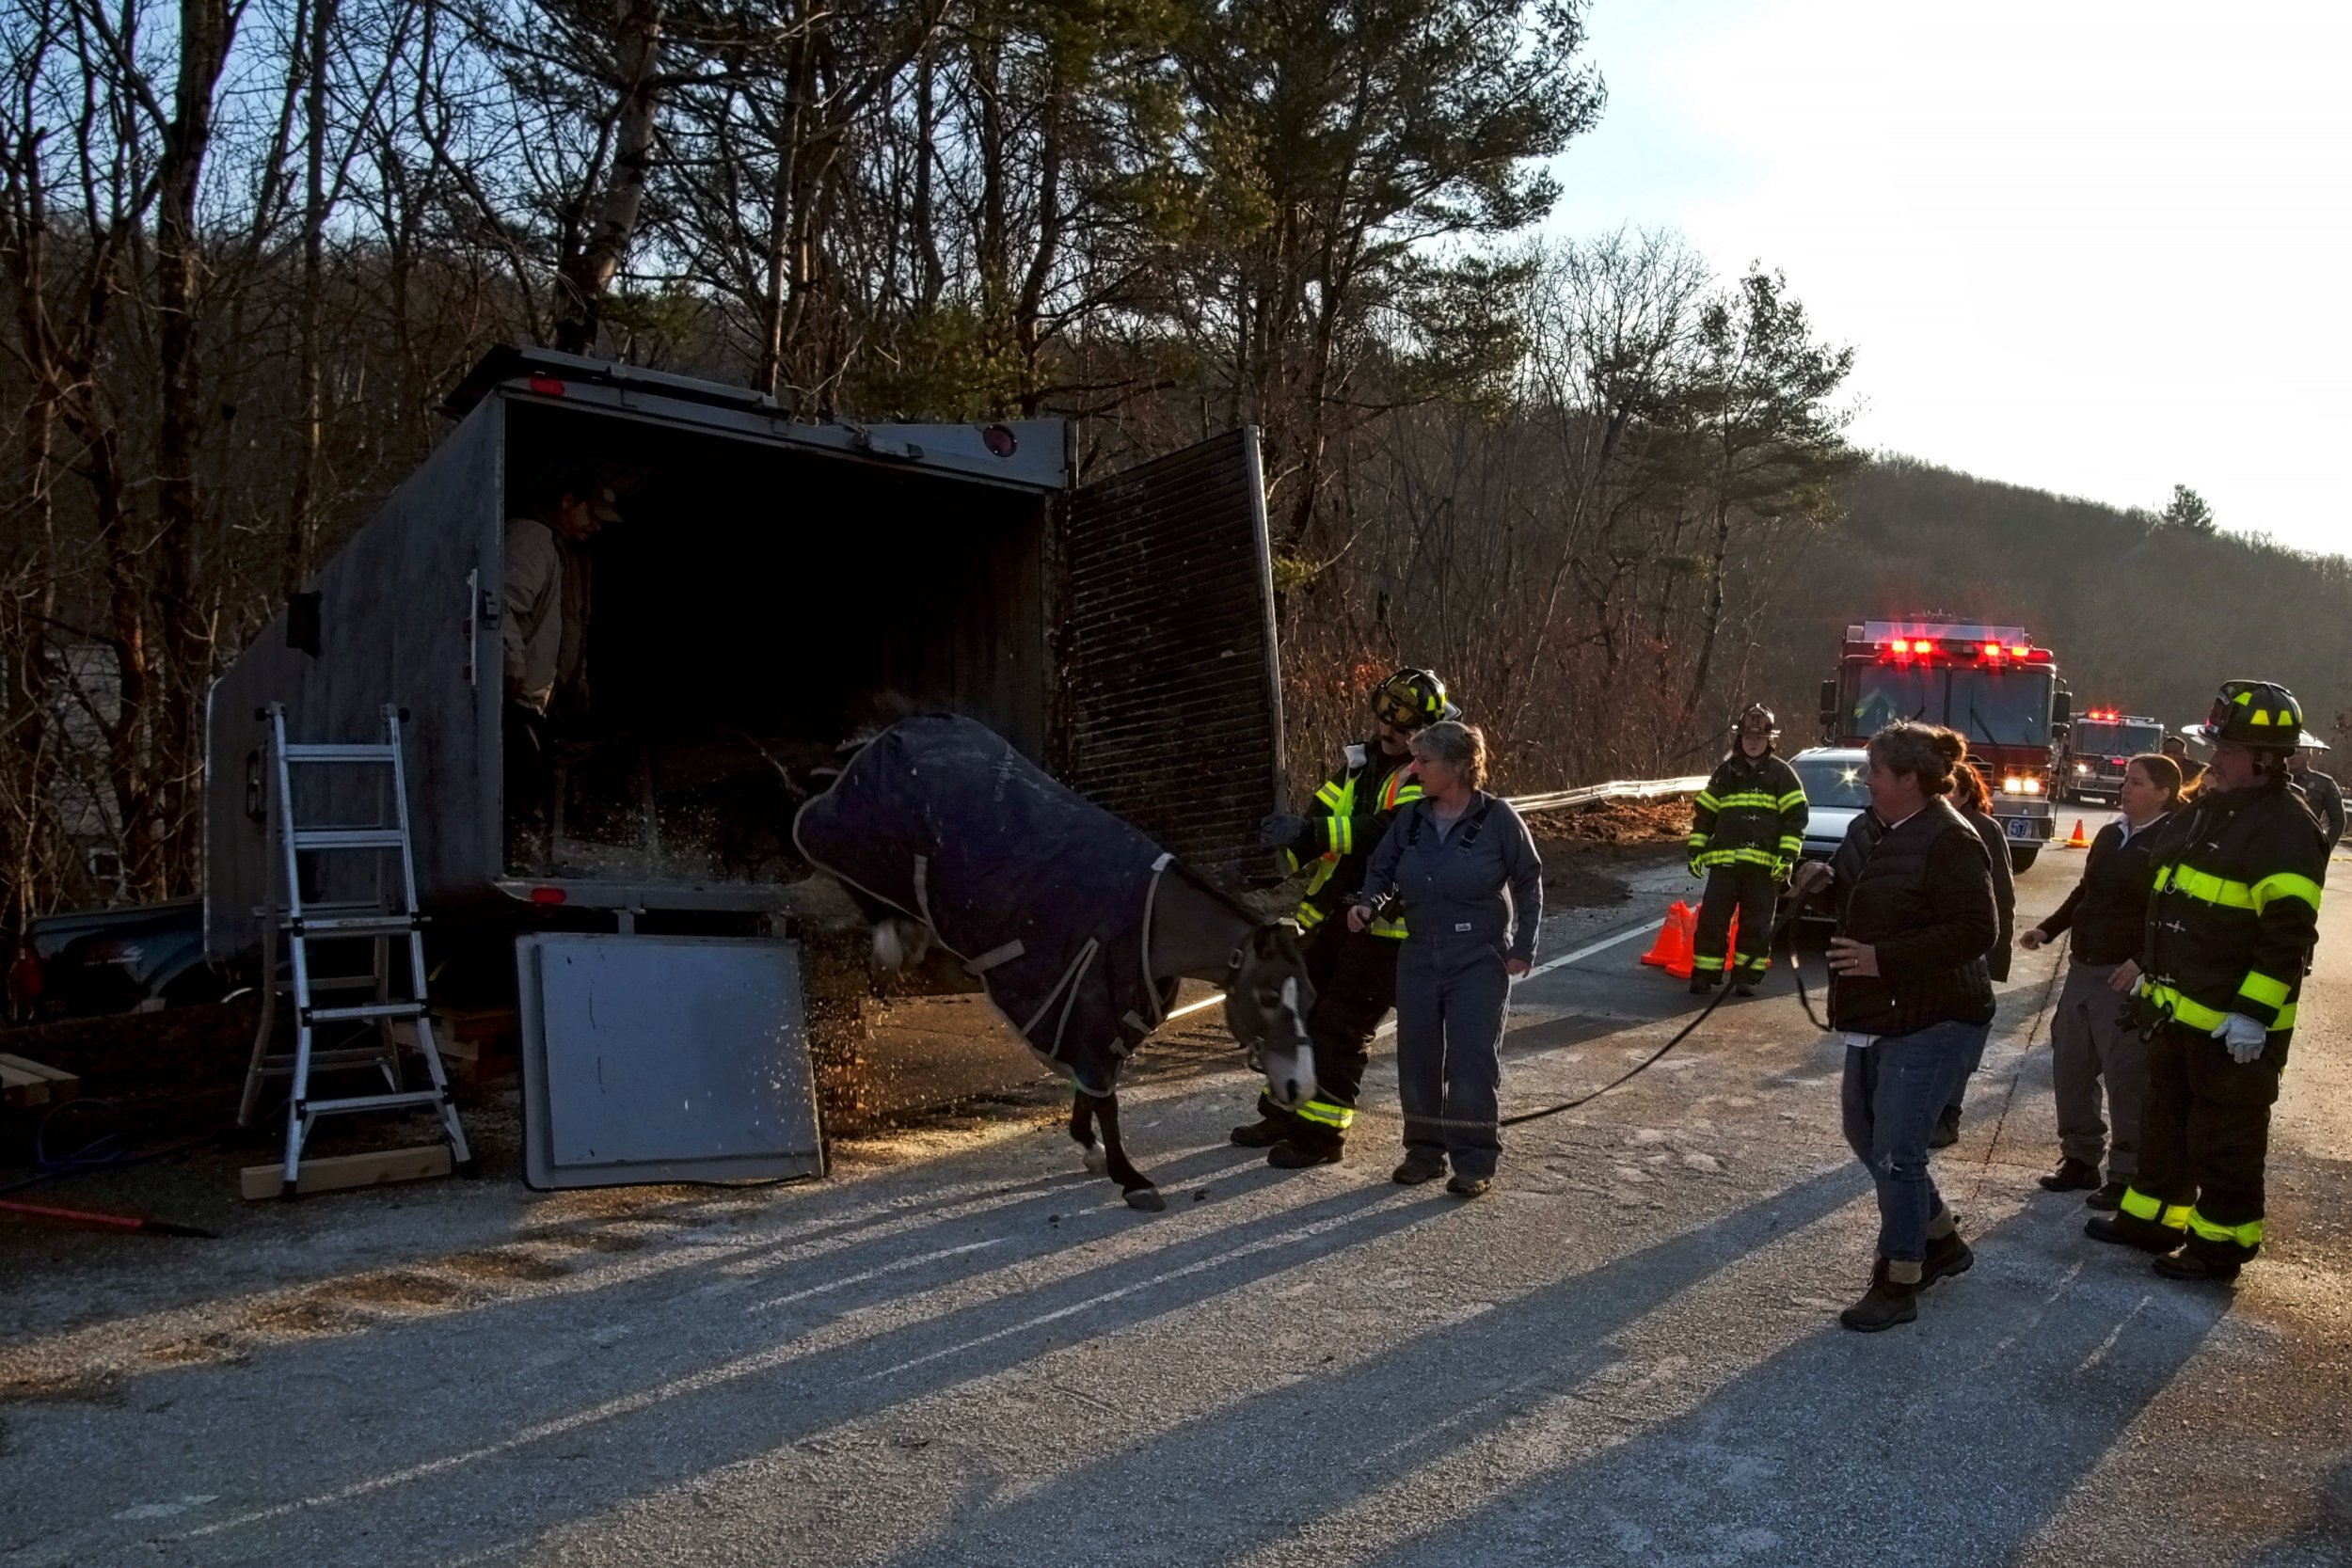 20190106_Waterford_Cohanzie_Quaker_Hill_Horse_Trailer_Rescue_Rt32_395_x0086v2.jpg